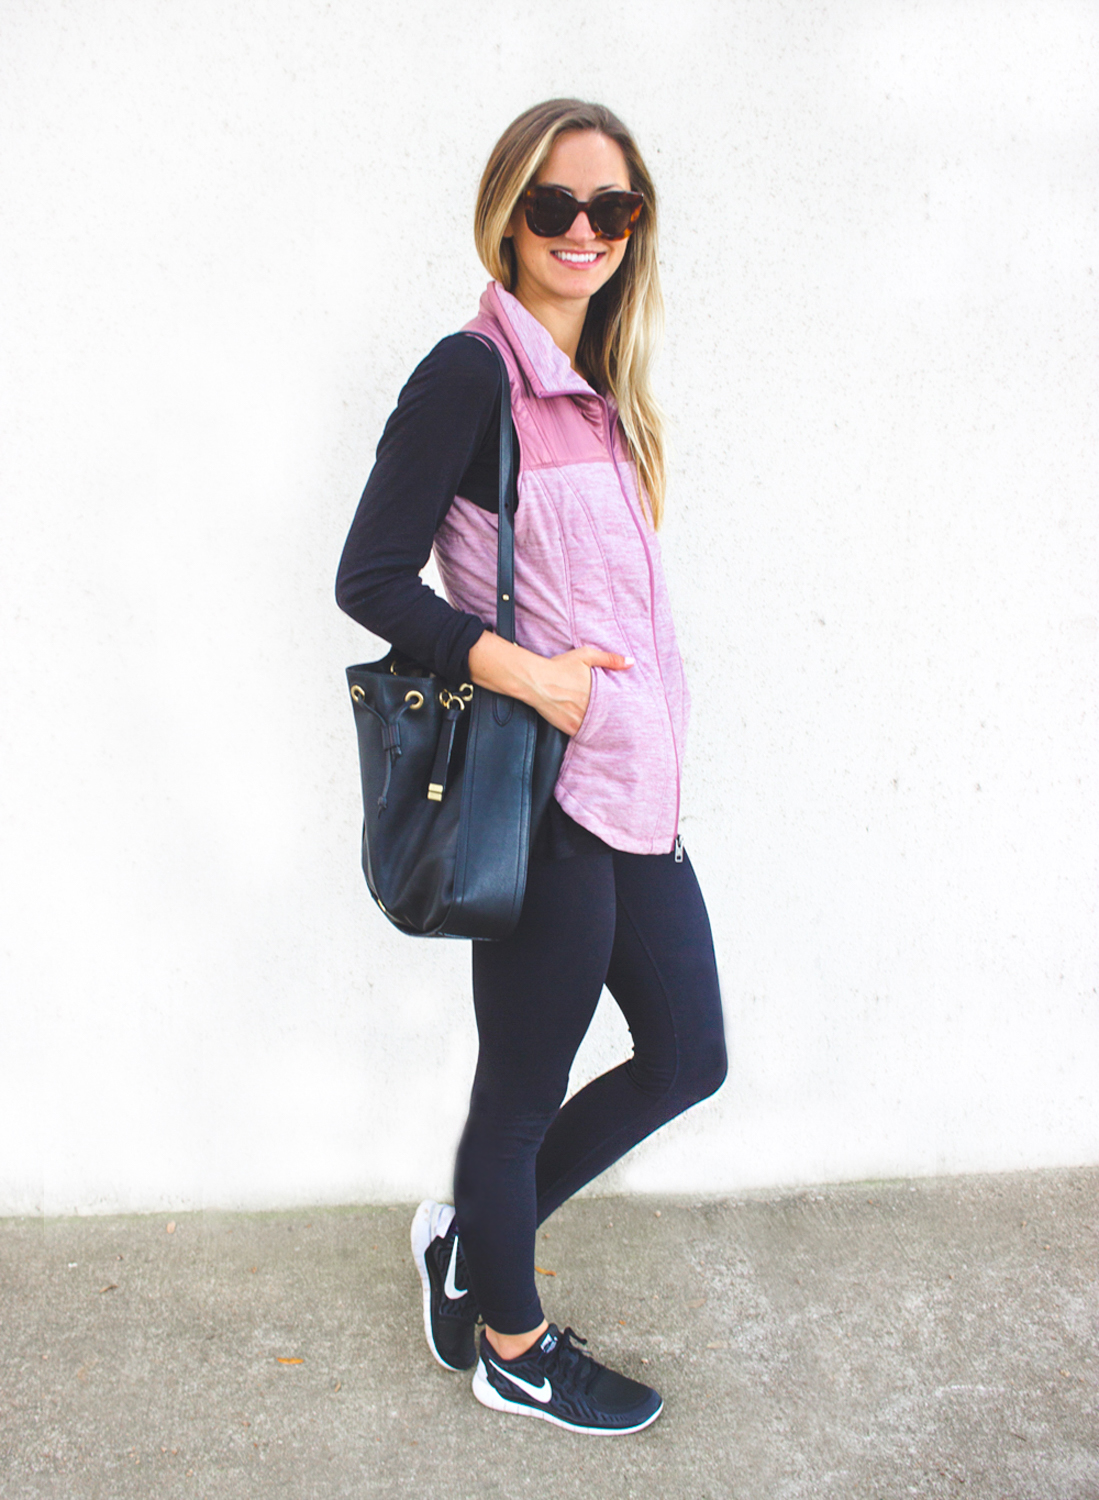 north-face-pseudio-vest-puffer-cozy-winter-lilac-olivia-watson-nordstrom-outdoor-outfit-3